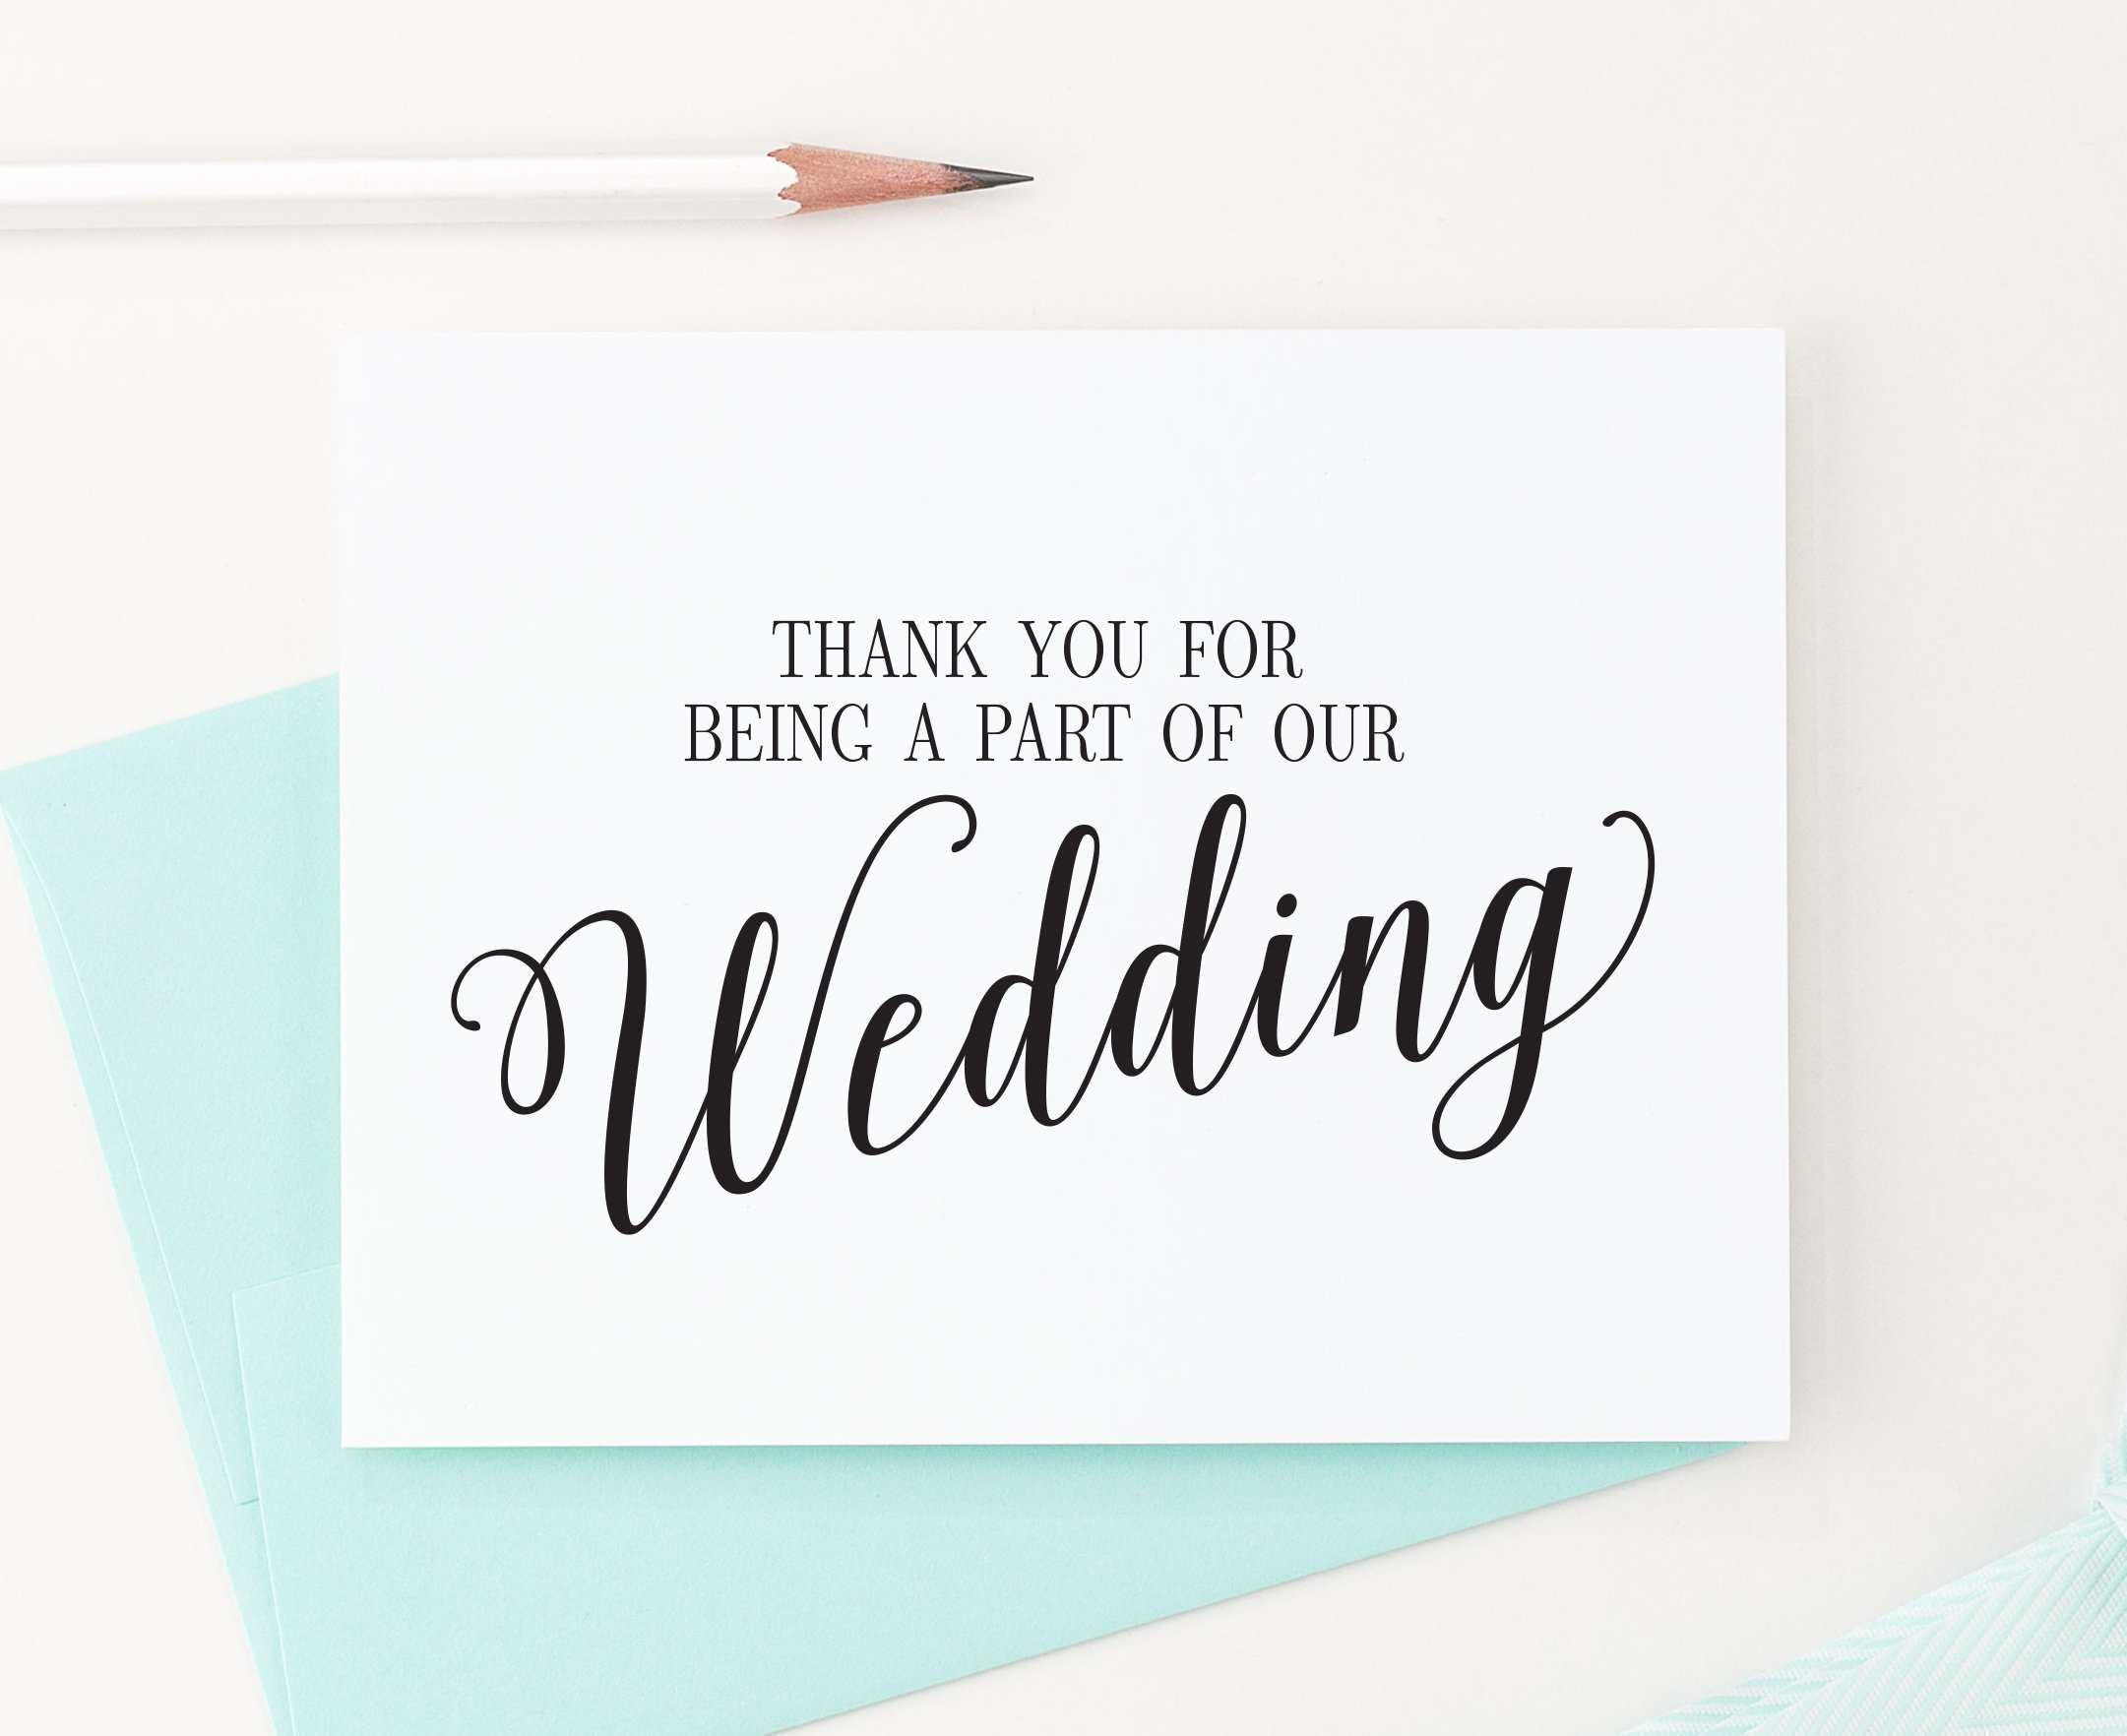 Wedding Thank You Cards Set, Thank You for Being a Part of Our Special Day, Vendor, Florist, etc (Set of 5), 5 Greeting Cards with envelopes - Your Choice